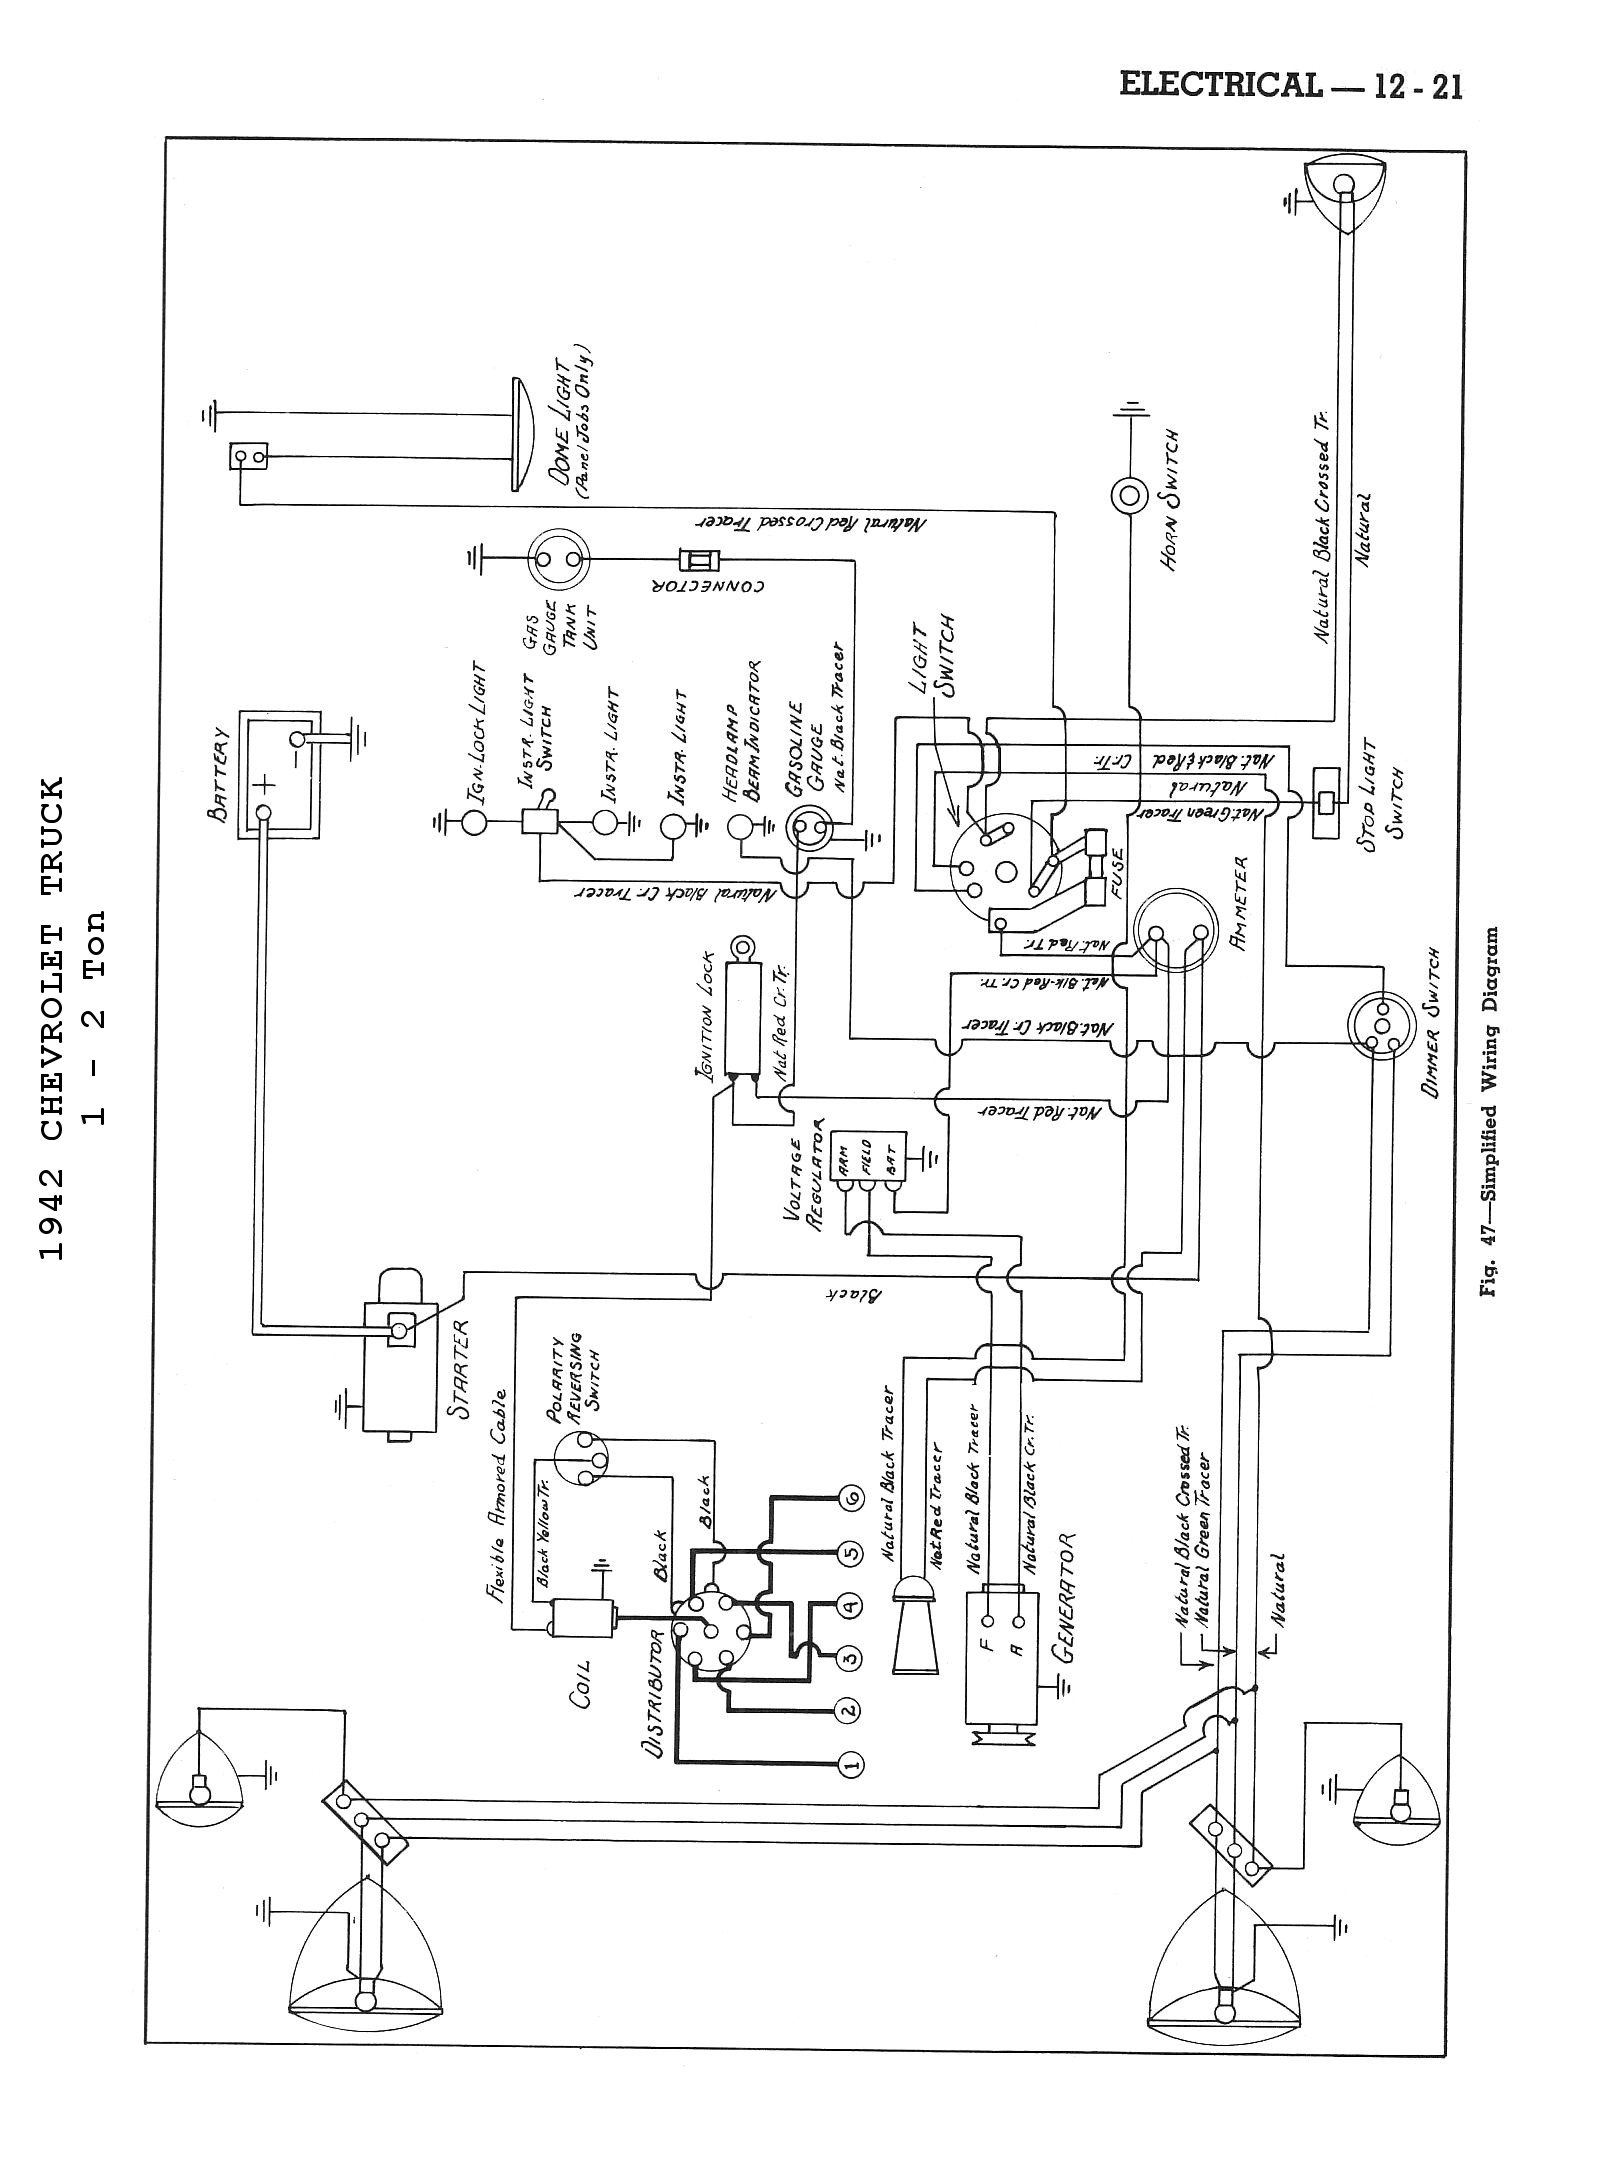 hight resolution of 57 chevy horn wiring diagram schematic wiring diagrams 1957 chevy wiring harness diagram for horn